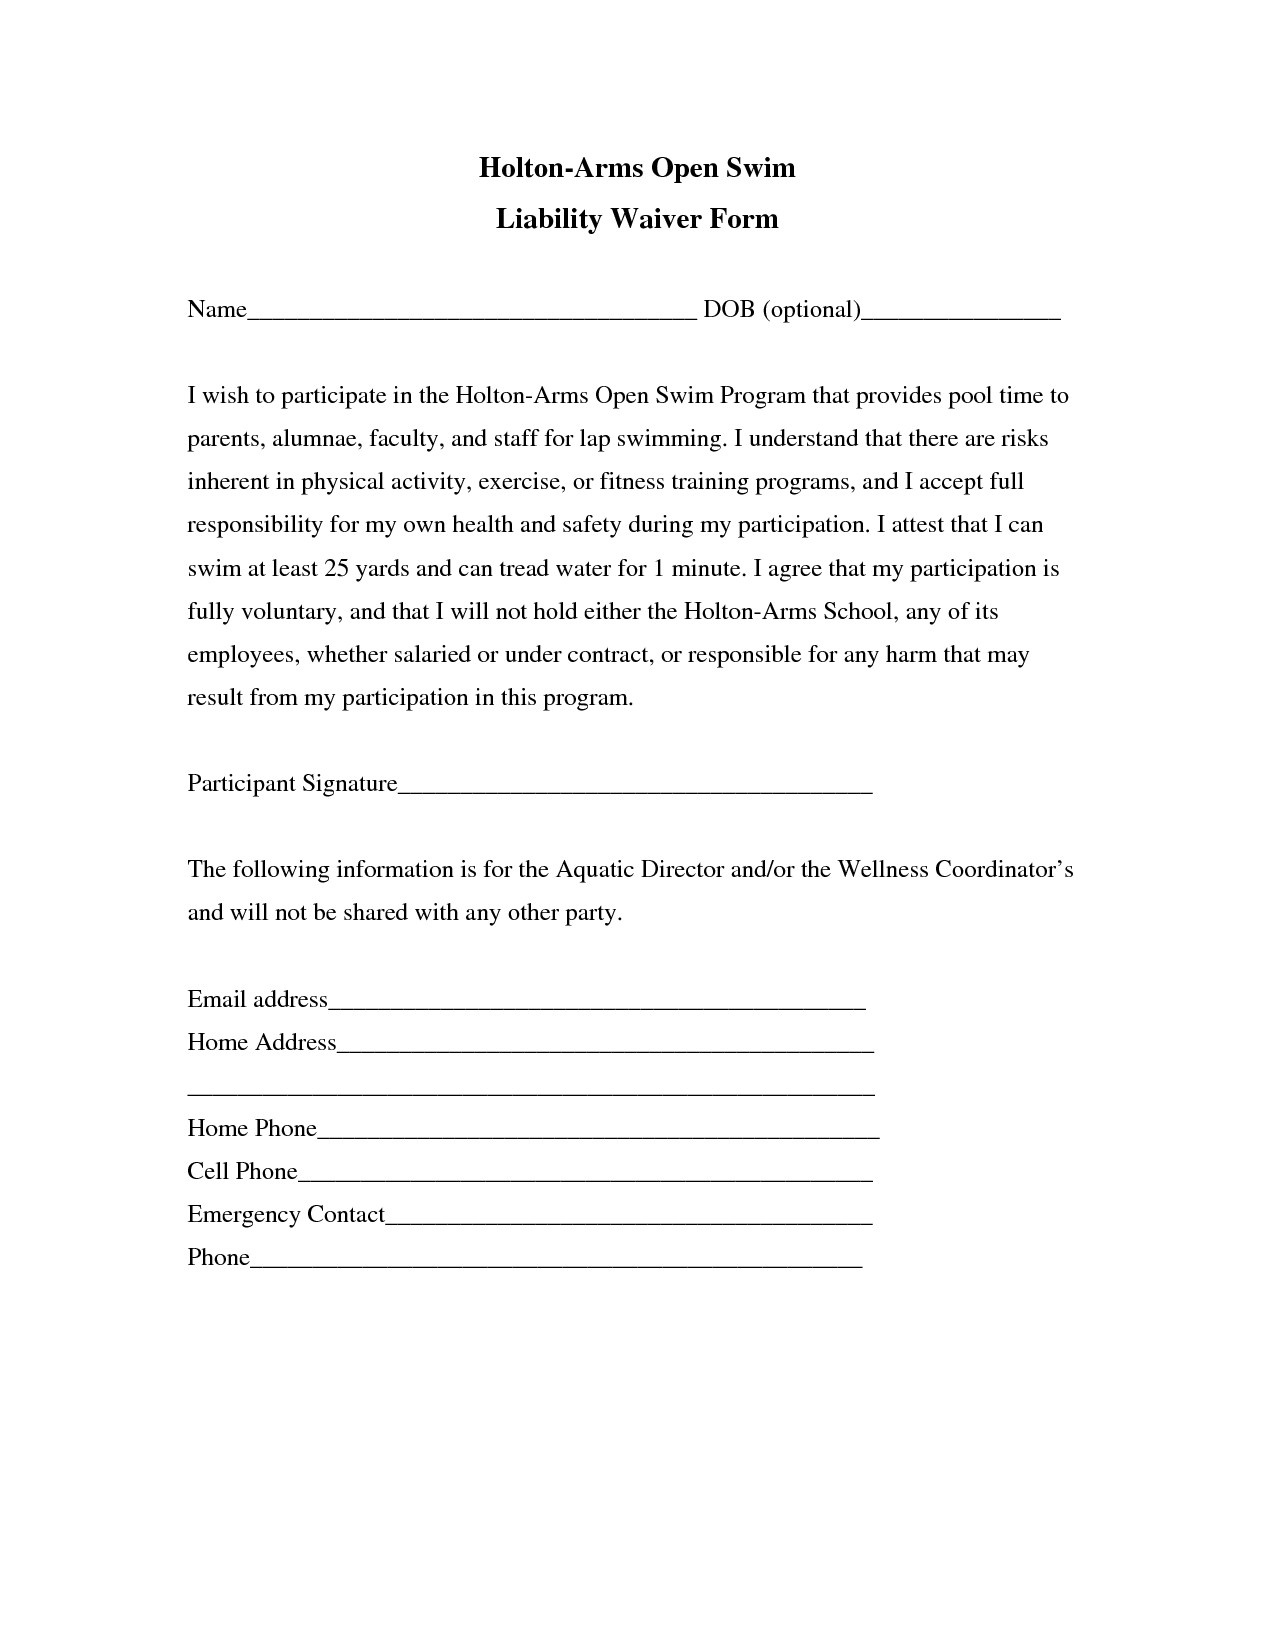 Release Of Liability Template Liability Insurance Liability Insurance Waiver Template